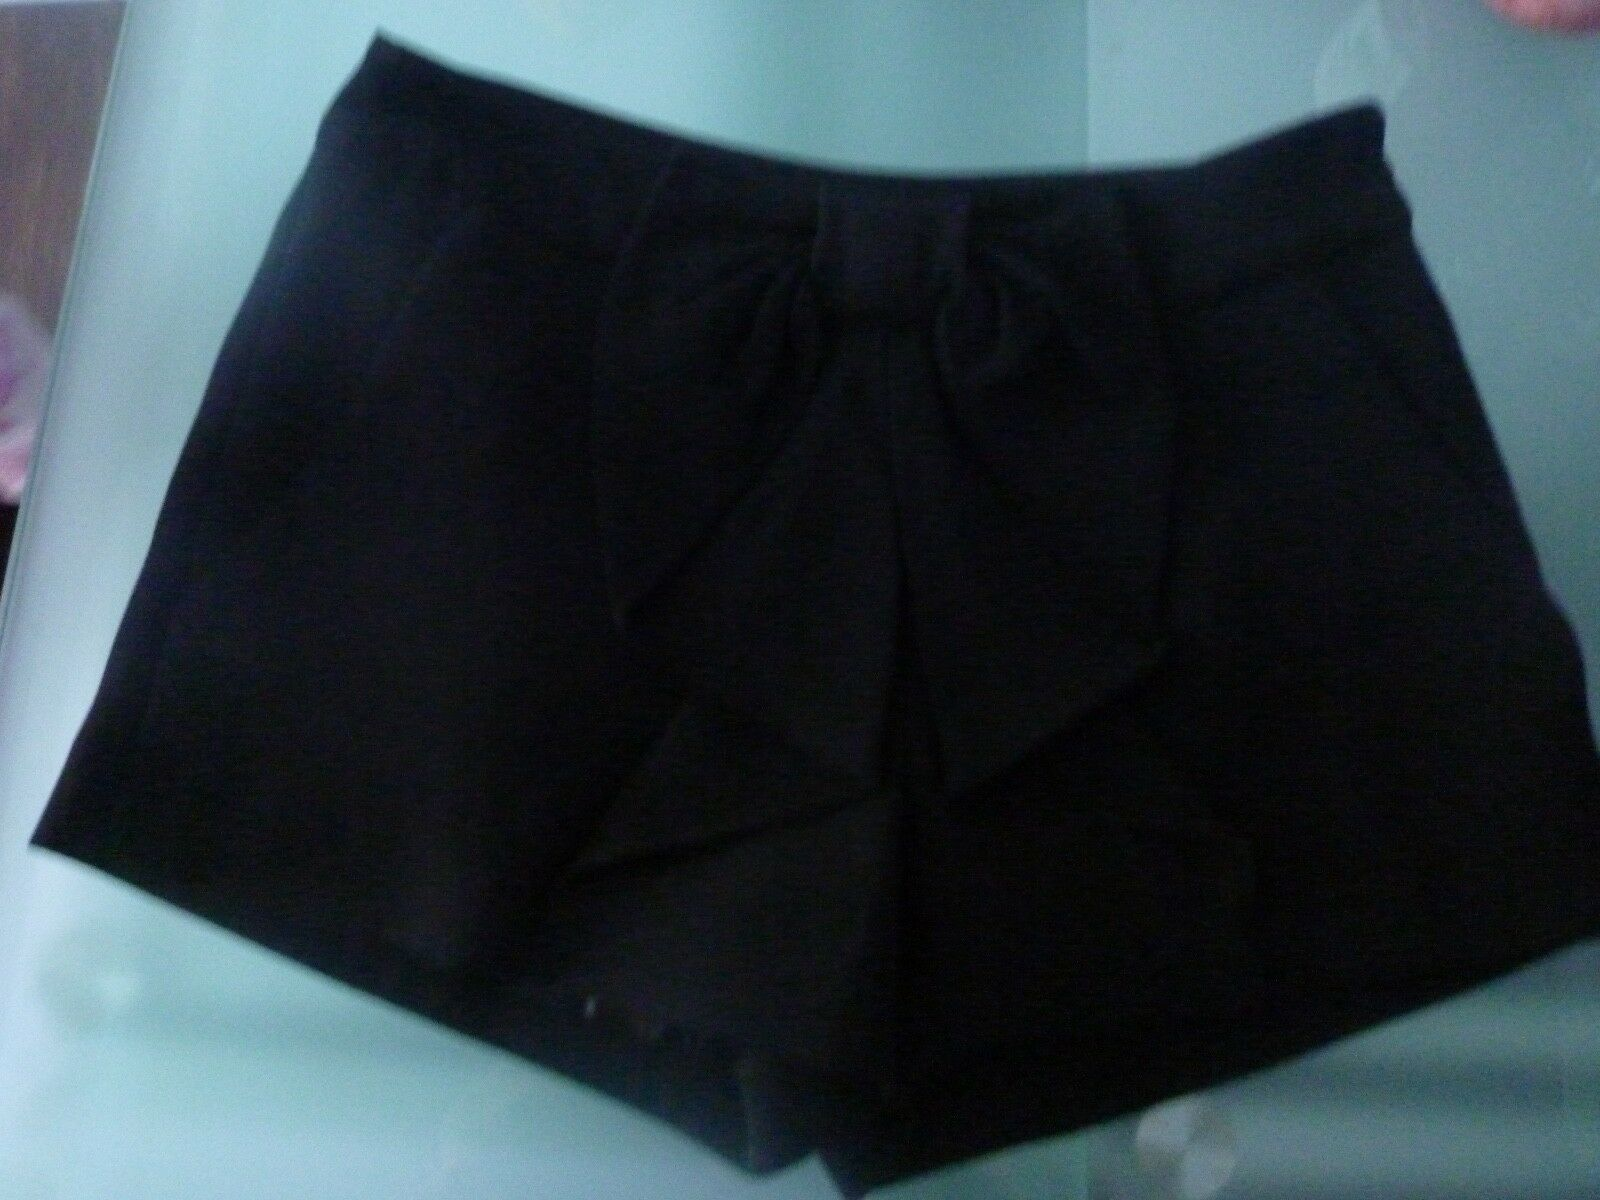 MAGNIFIQUE SHORT negro GROS NOEUD COULANT MARQUE MAJE Talla 34 34 34 NEUF 79fbce